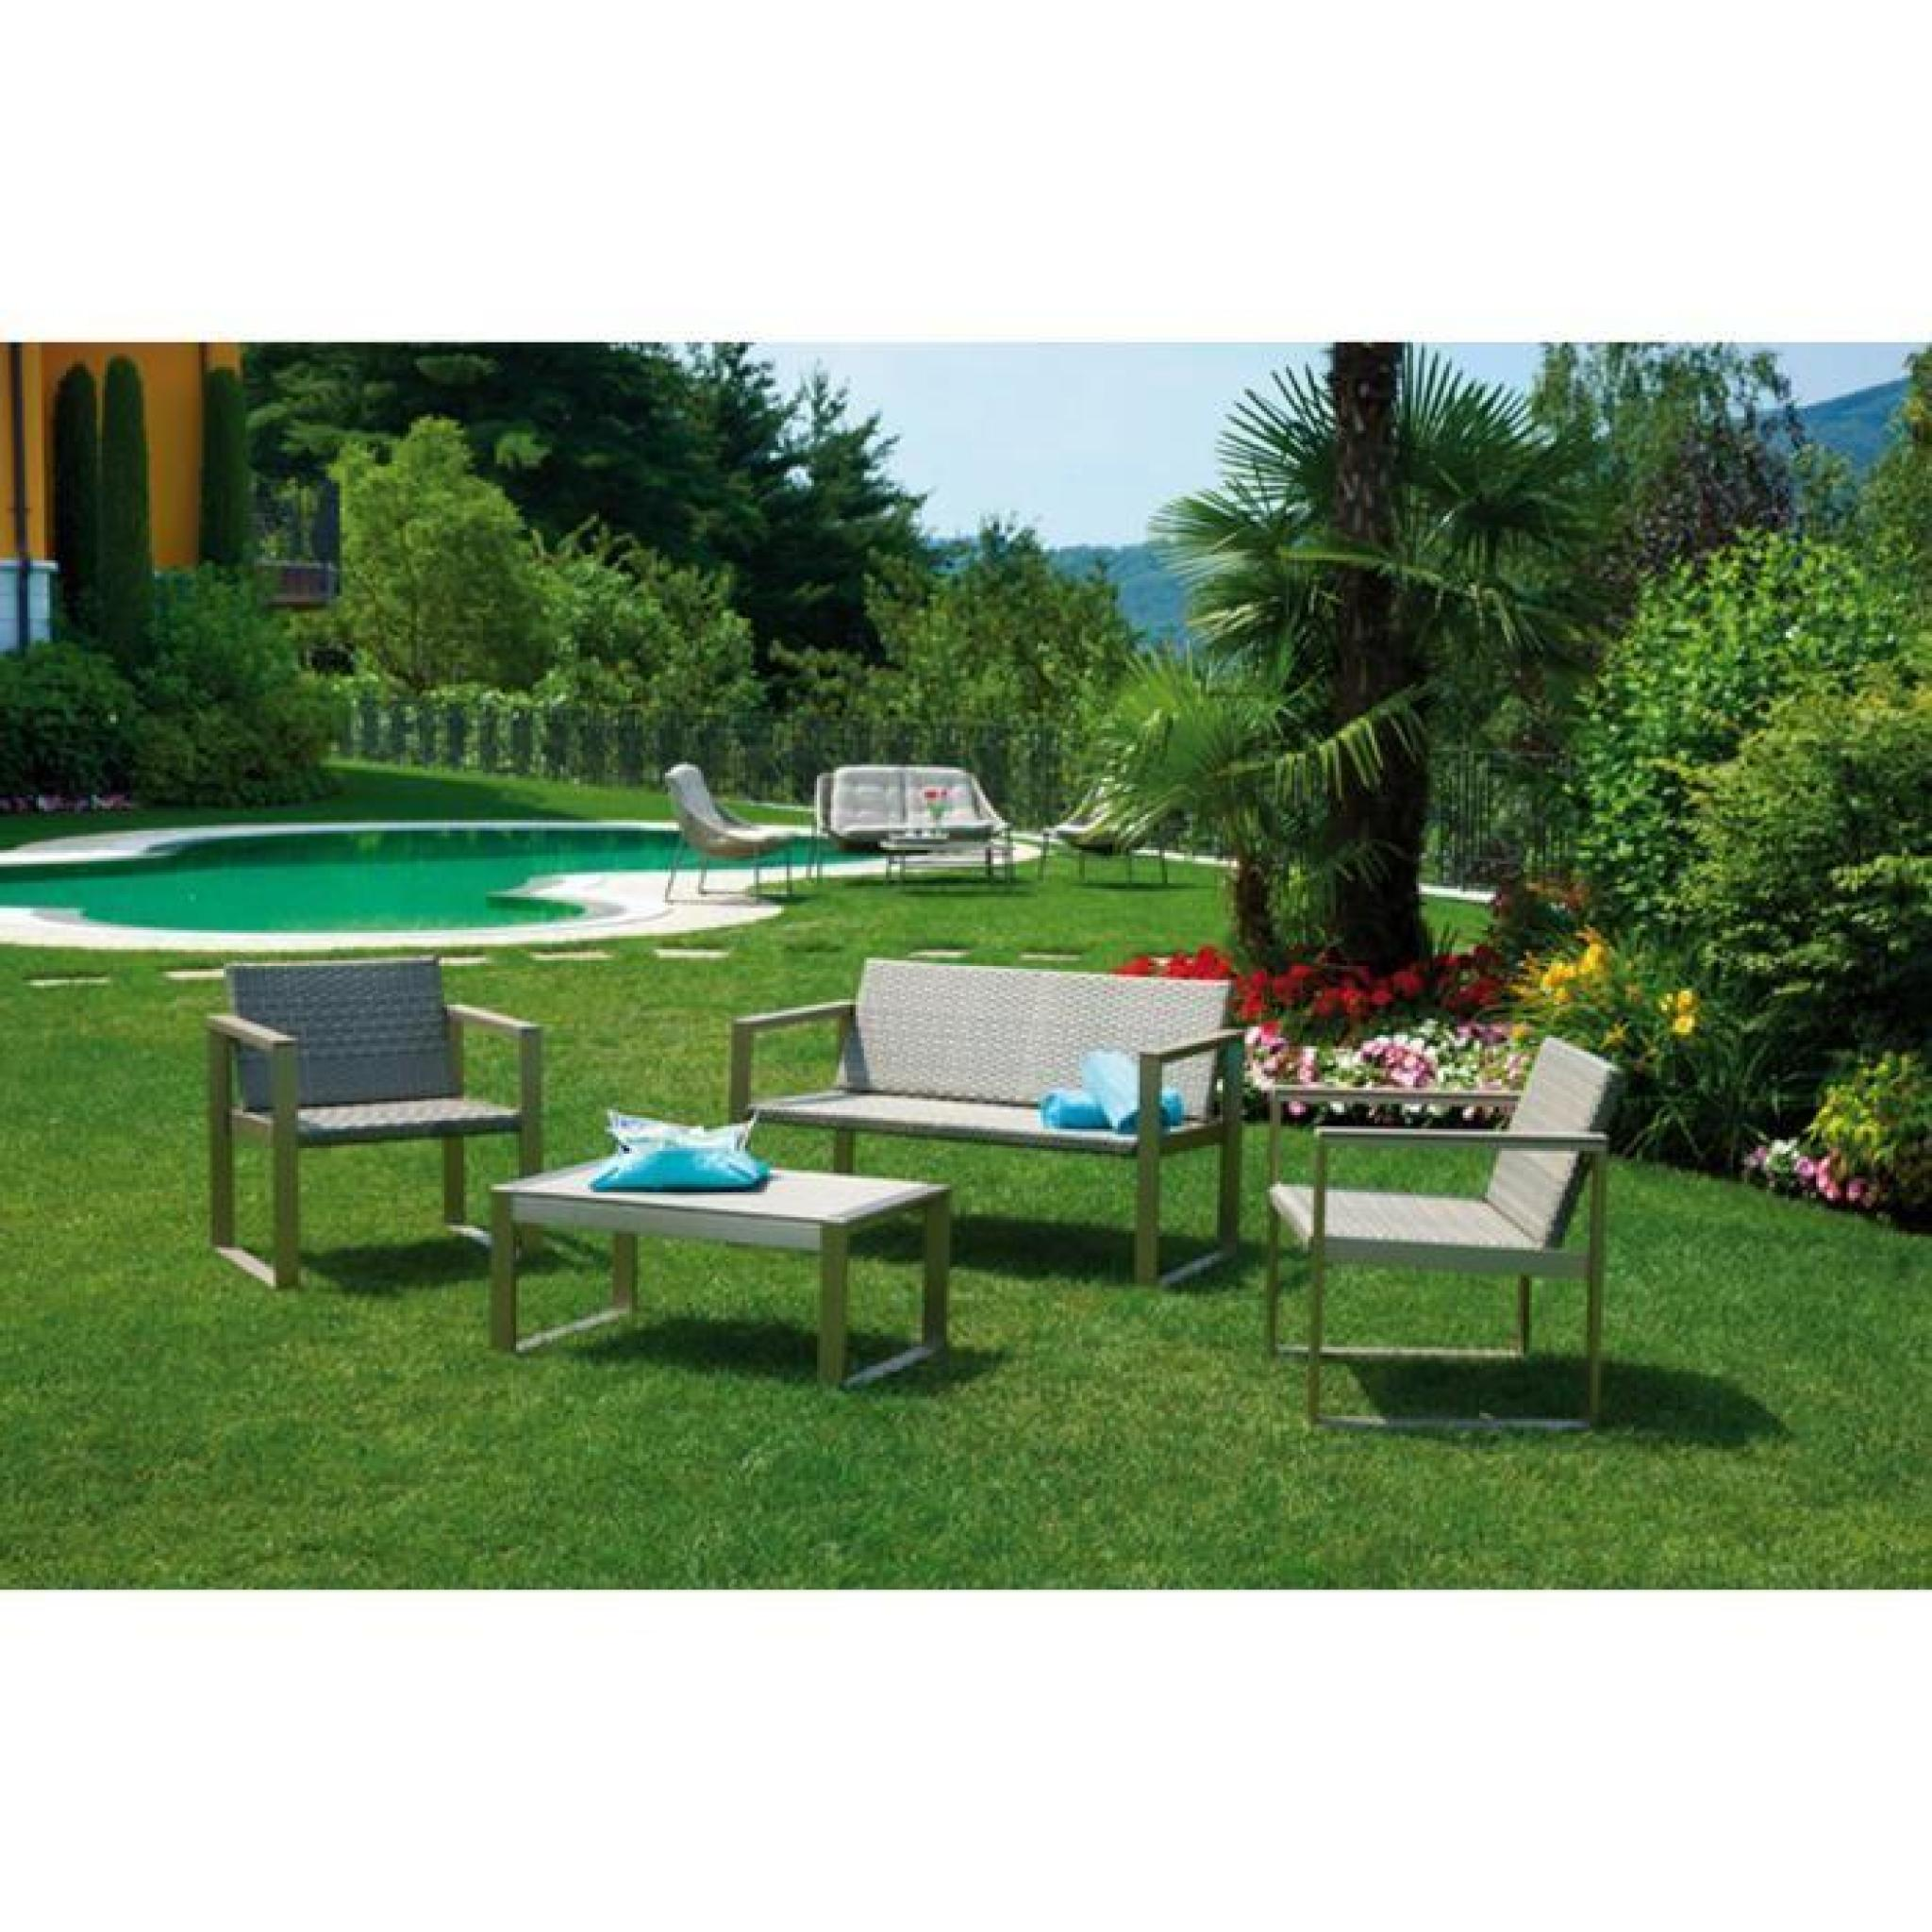 Table salon de jardin pas cher home design for Sallon de jardin pas cher